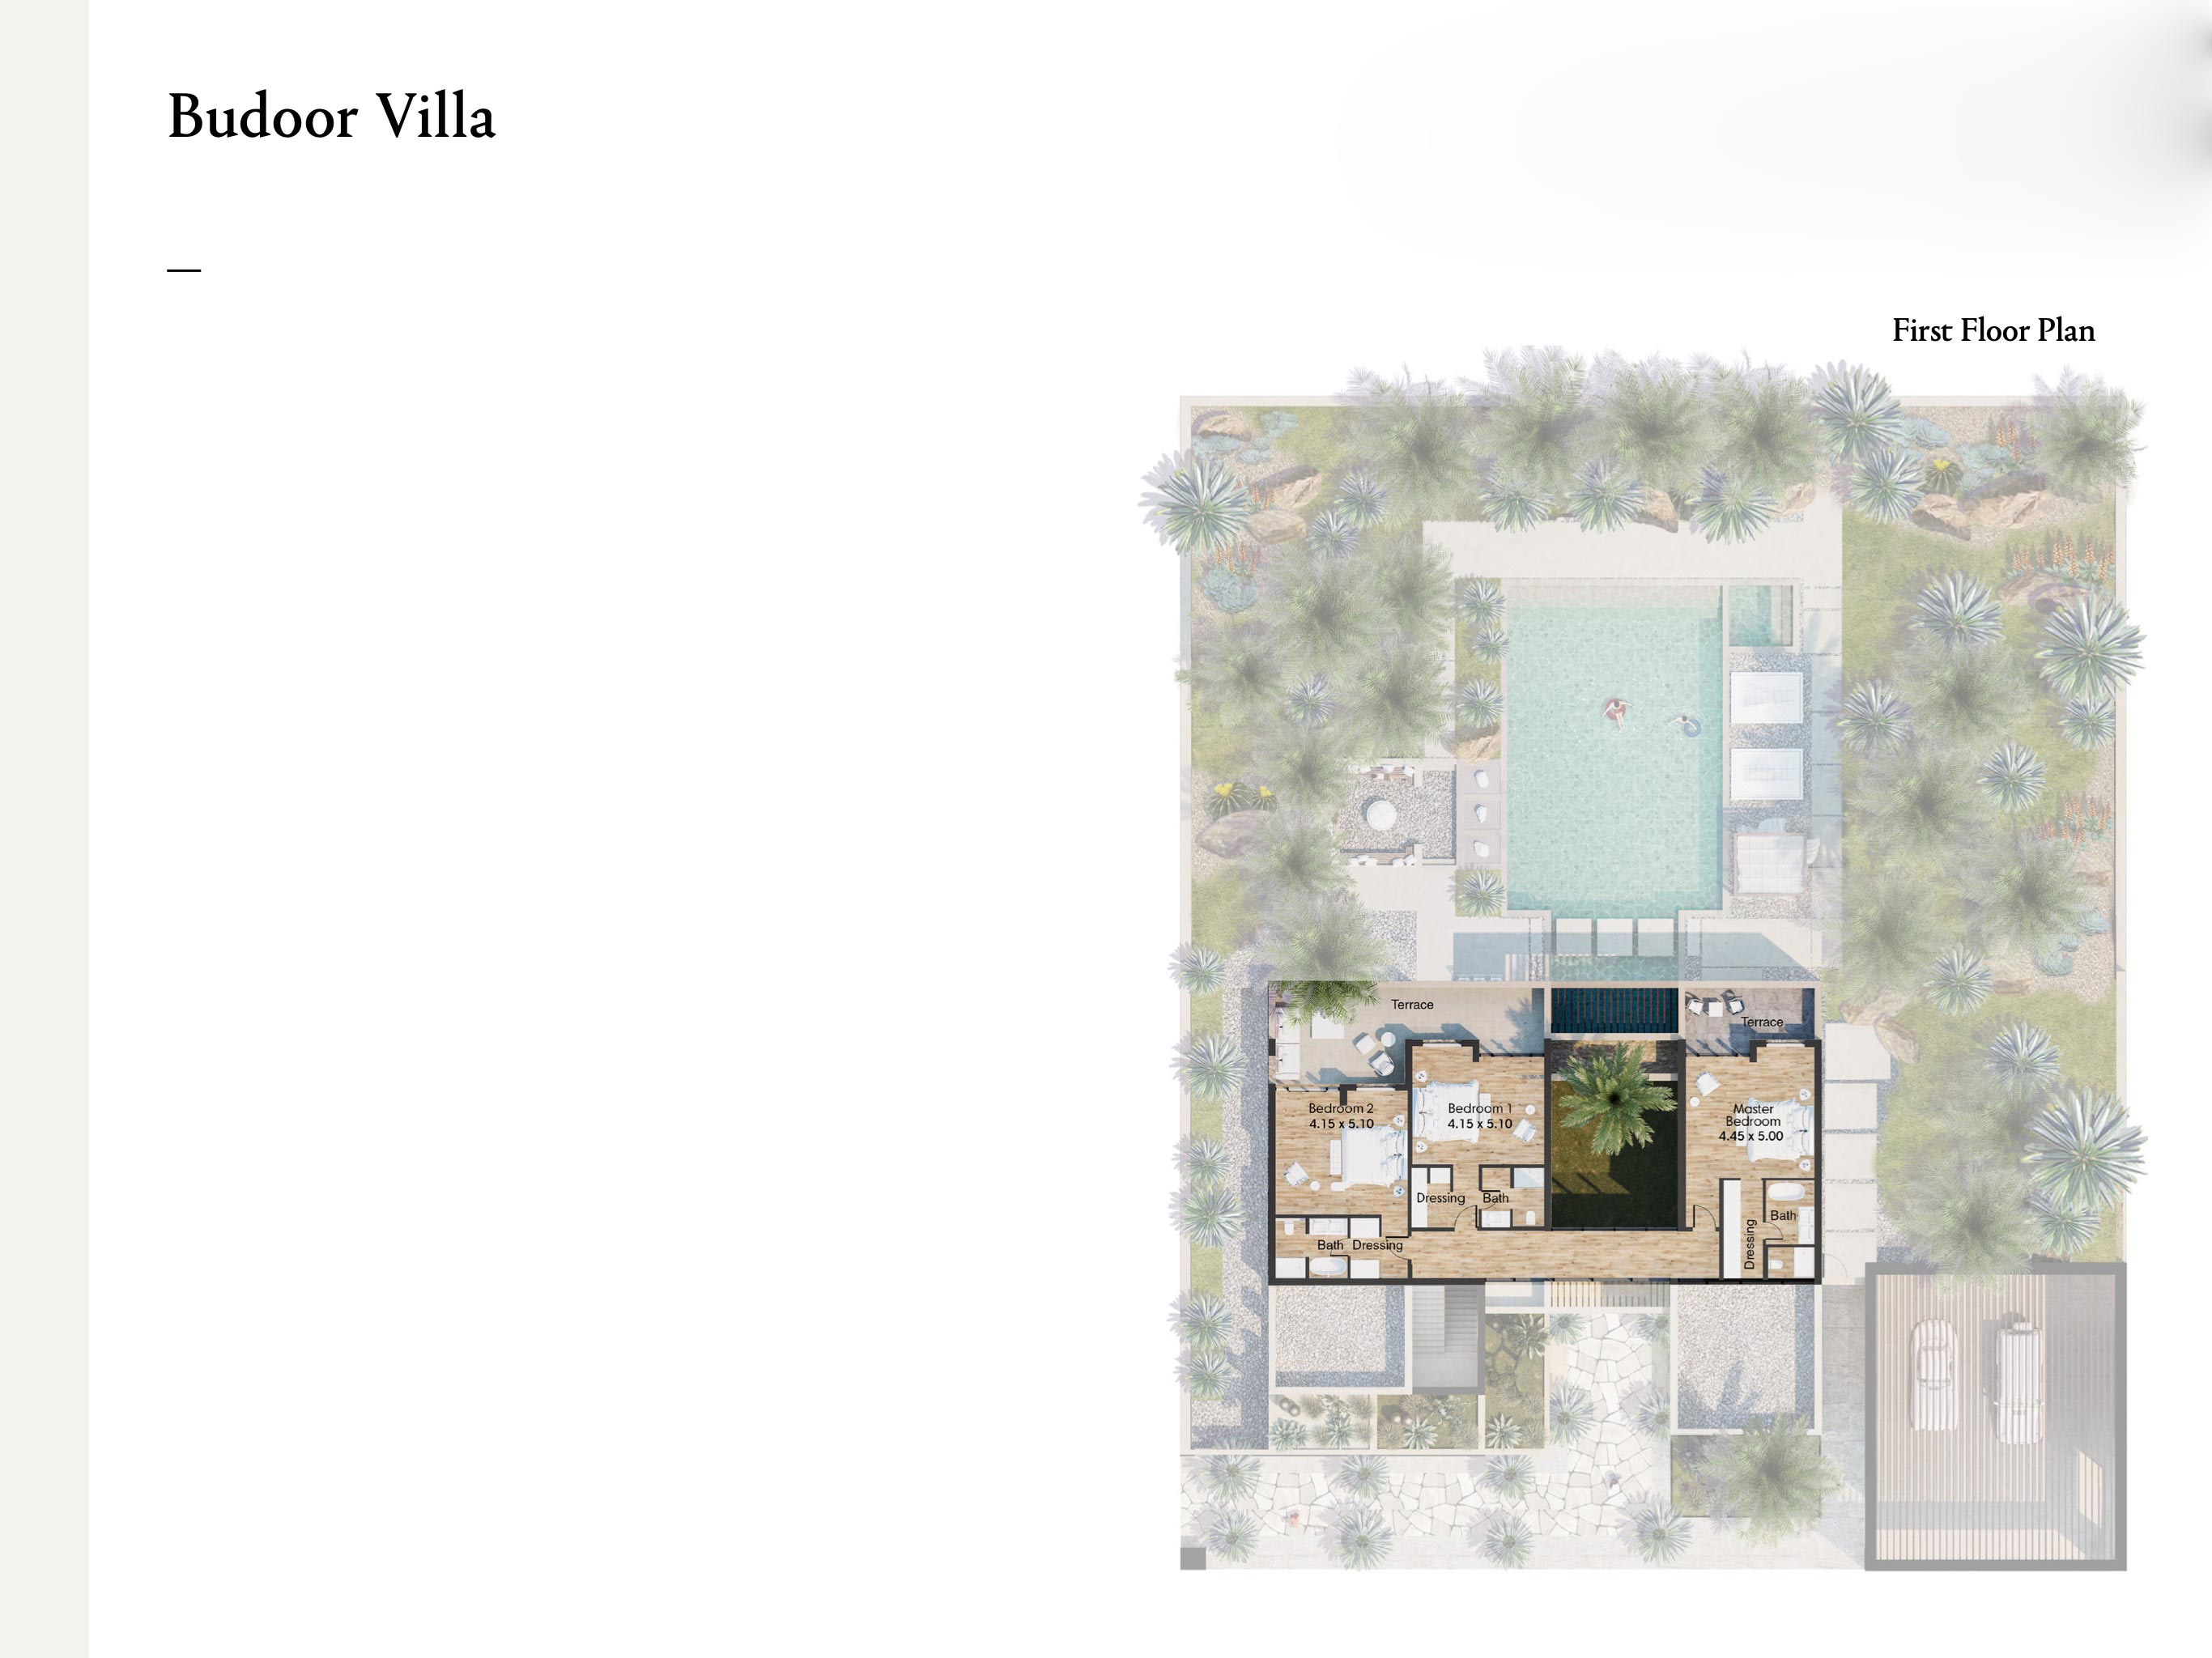 Budoor-Villa-5-Bedroom-Size-635-SQM.